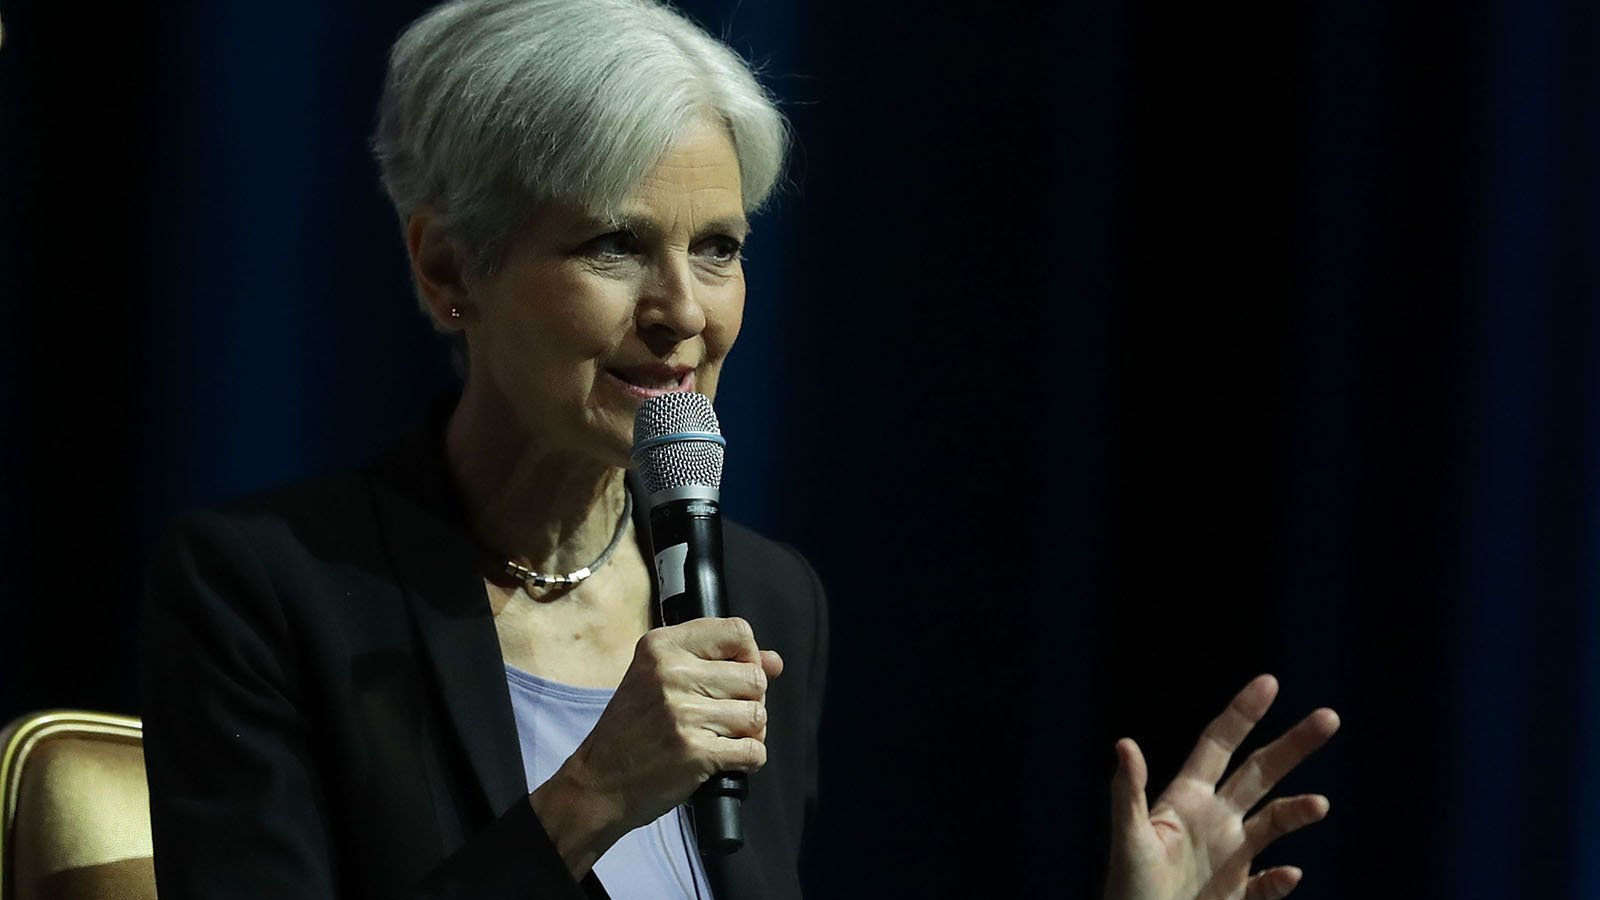 'I am not a Russian spy': Jill Stein slams Clinton's accusations